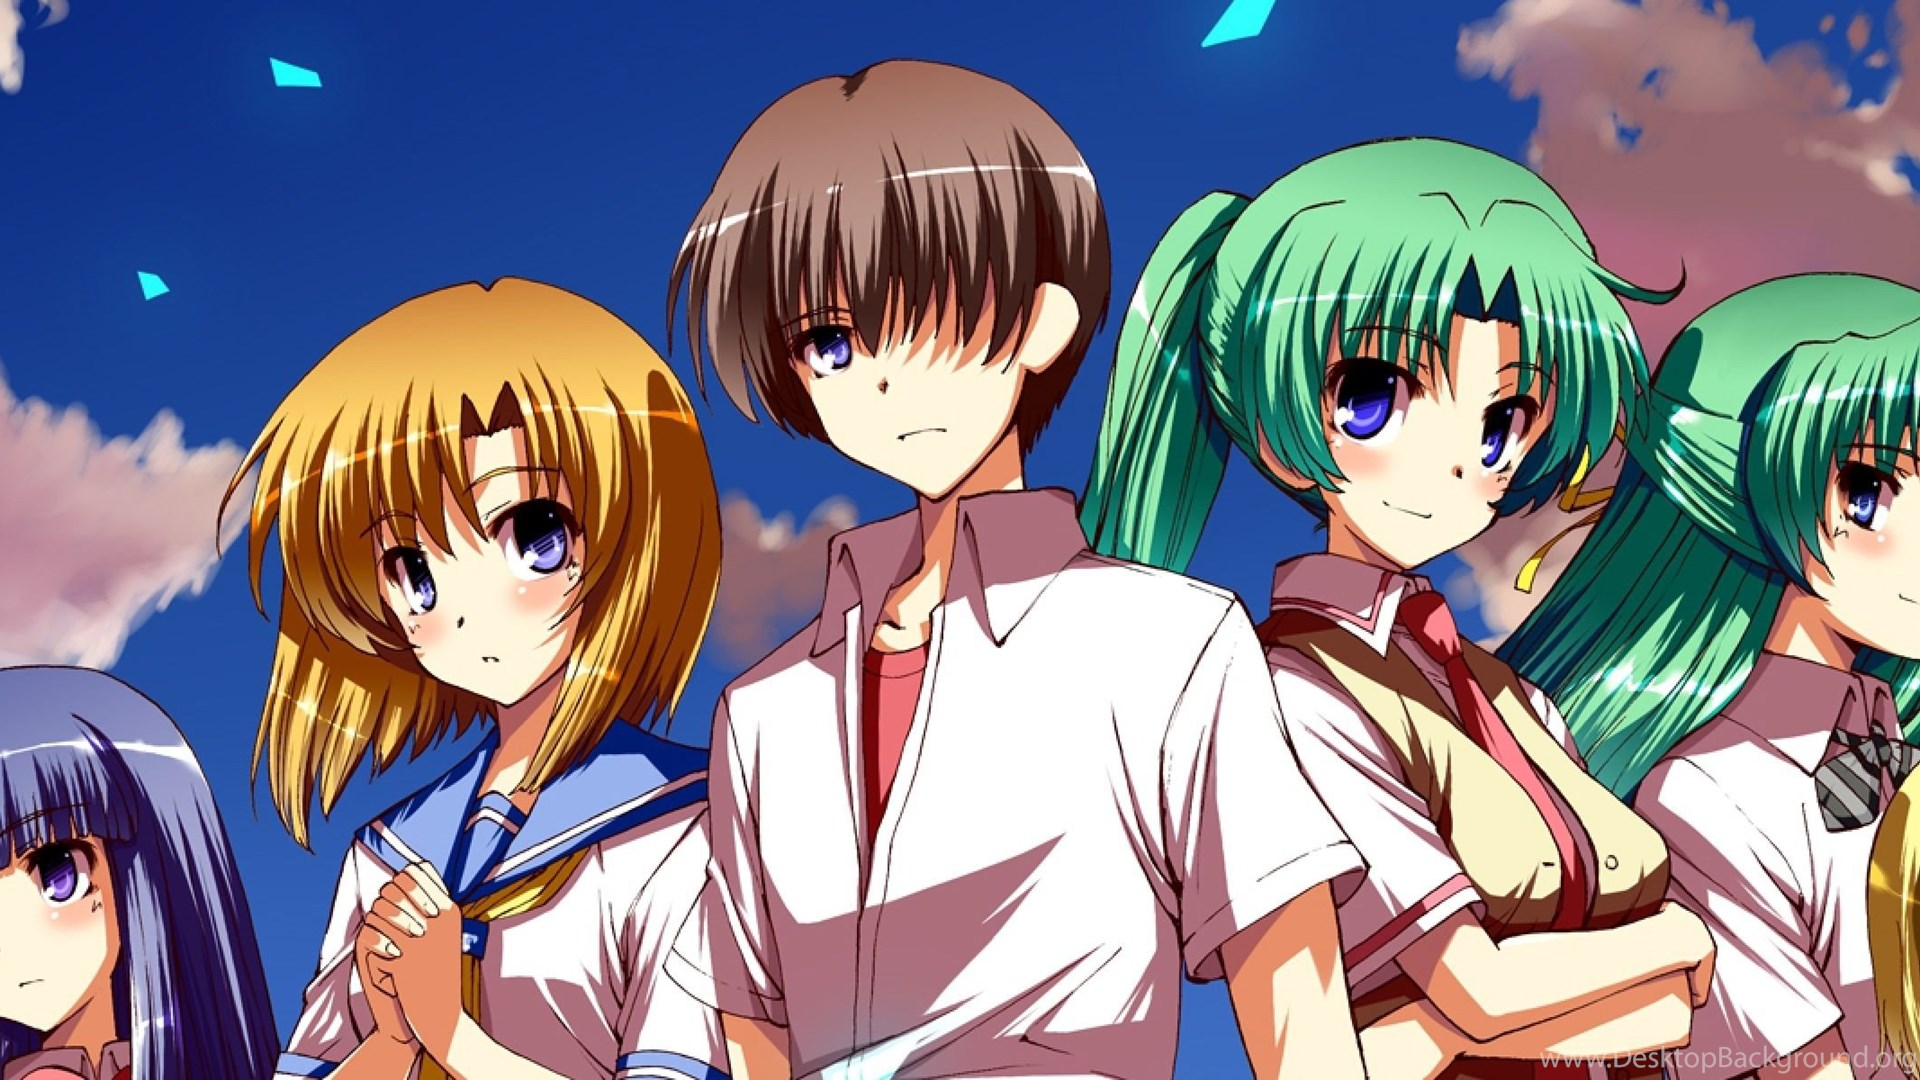 Download Wallpapers 3840x1200 Higurashi No Naku Koro Ni Crowd